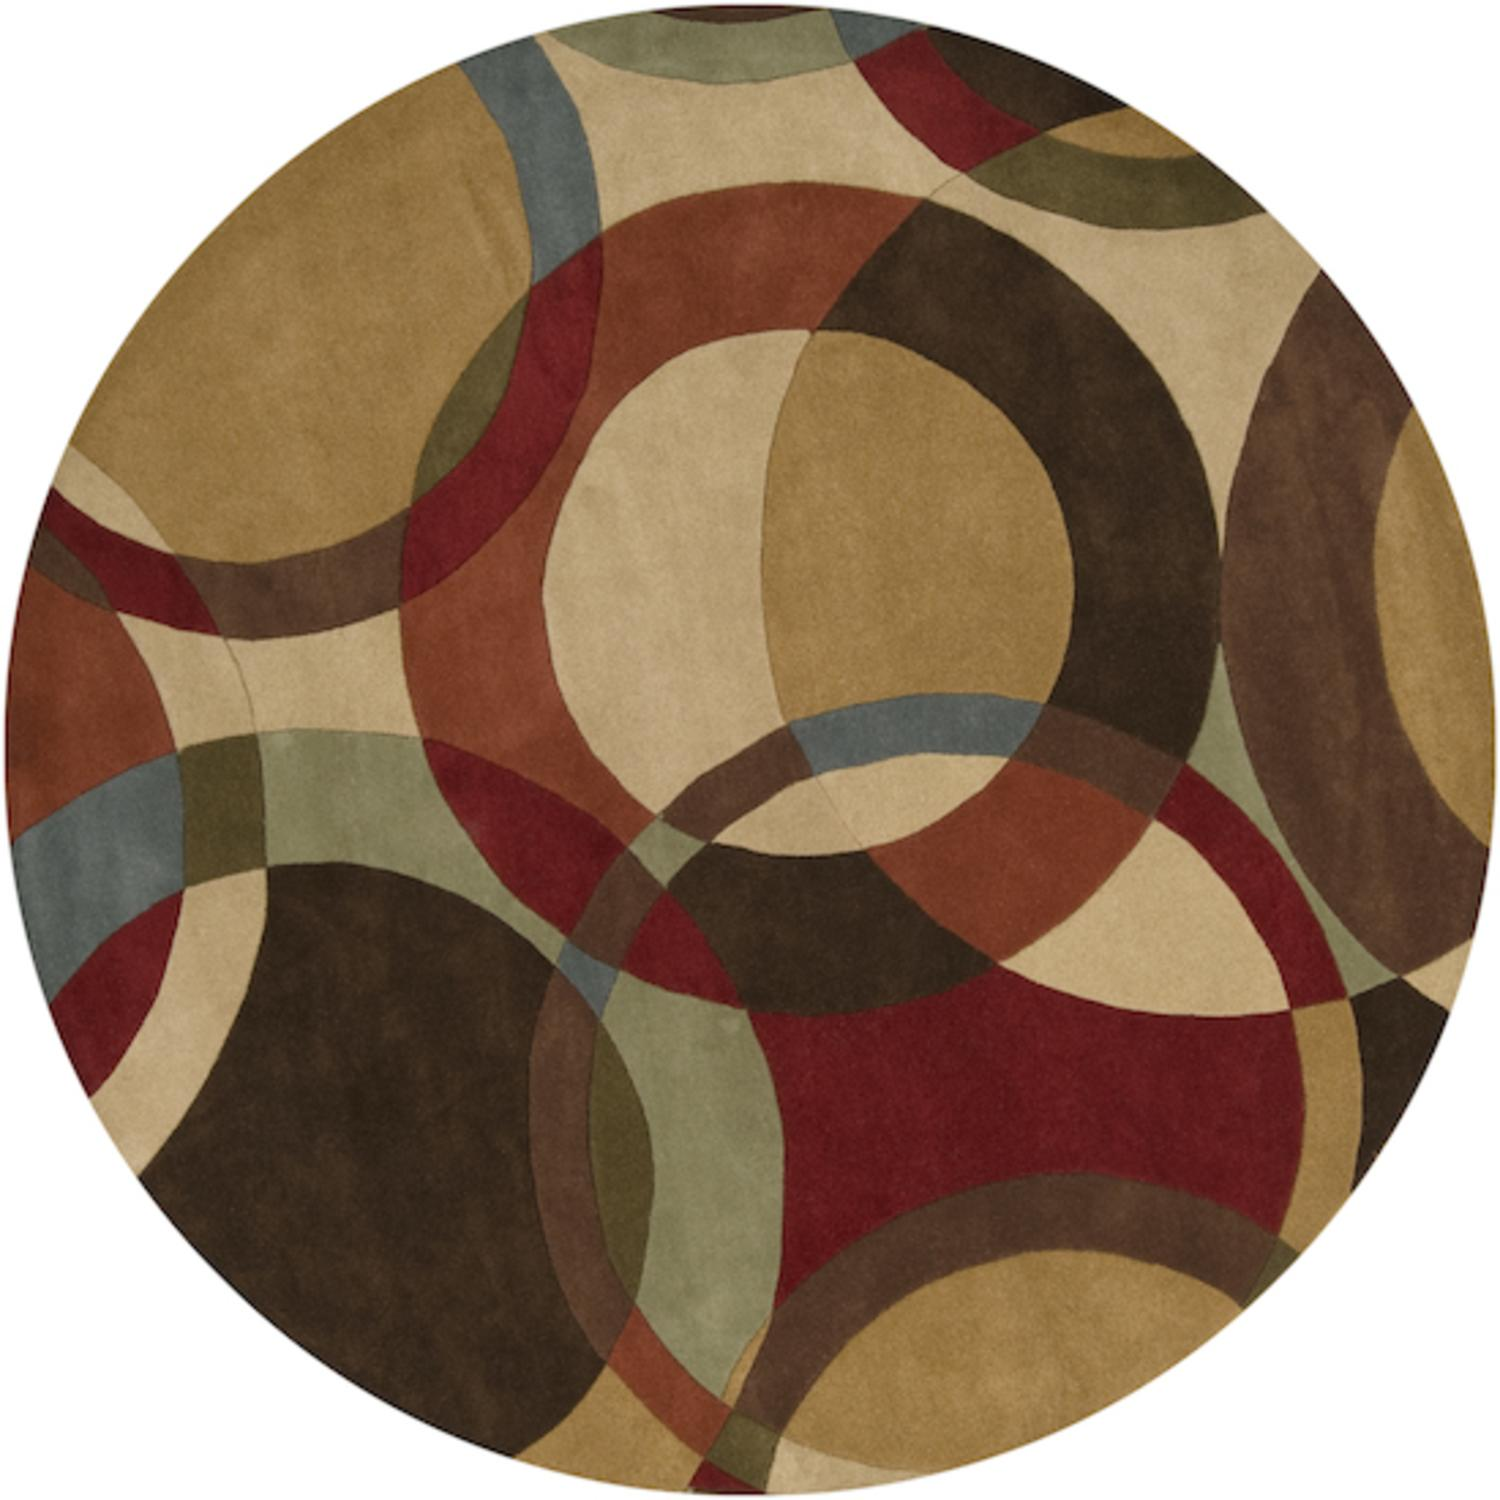 4' Modern Senzei Spheres Sienna Red and Brown Wool Round Area Throw Rug